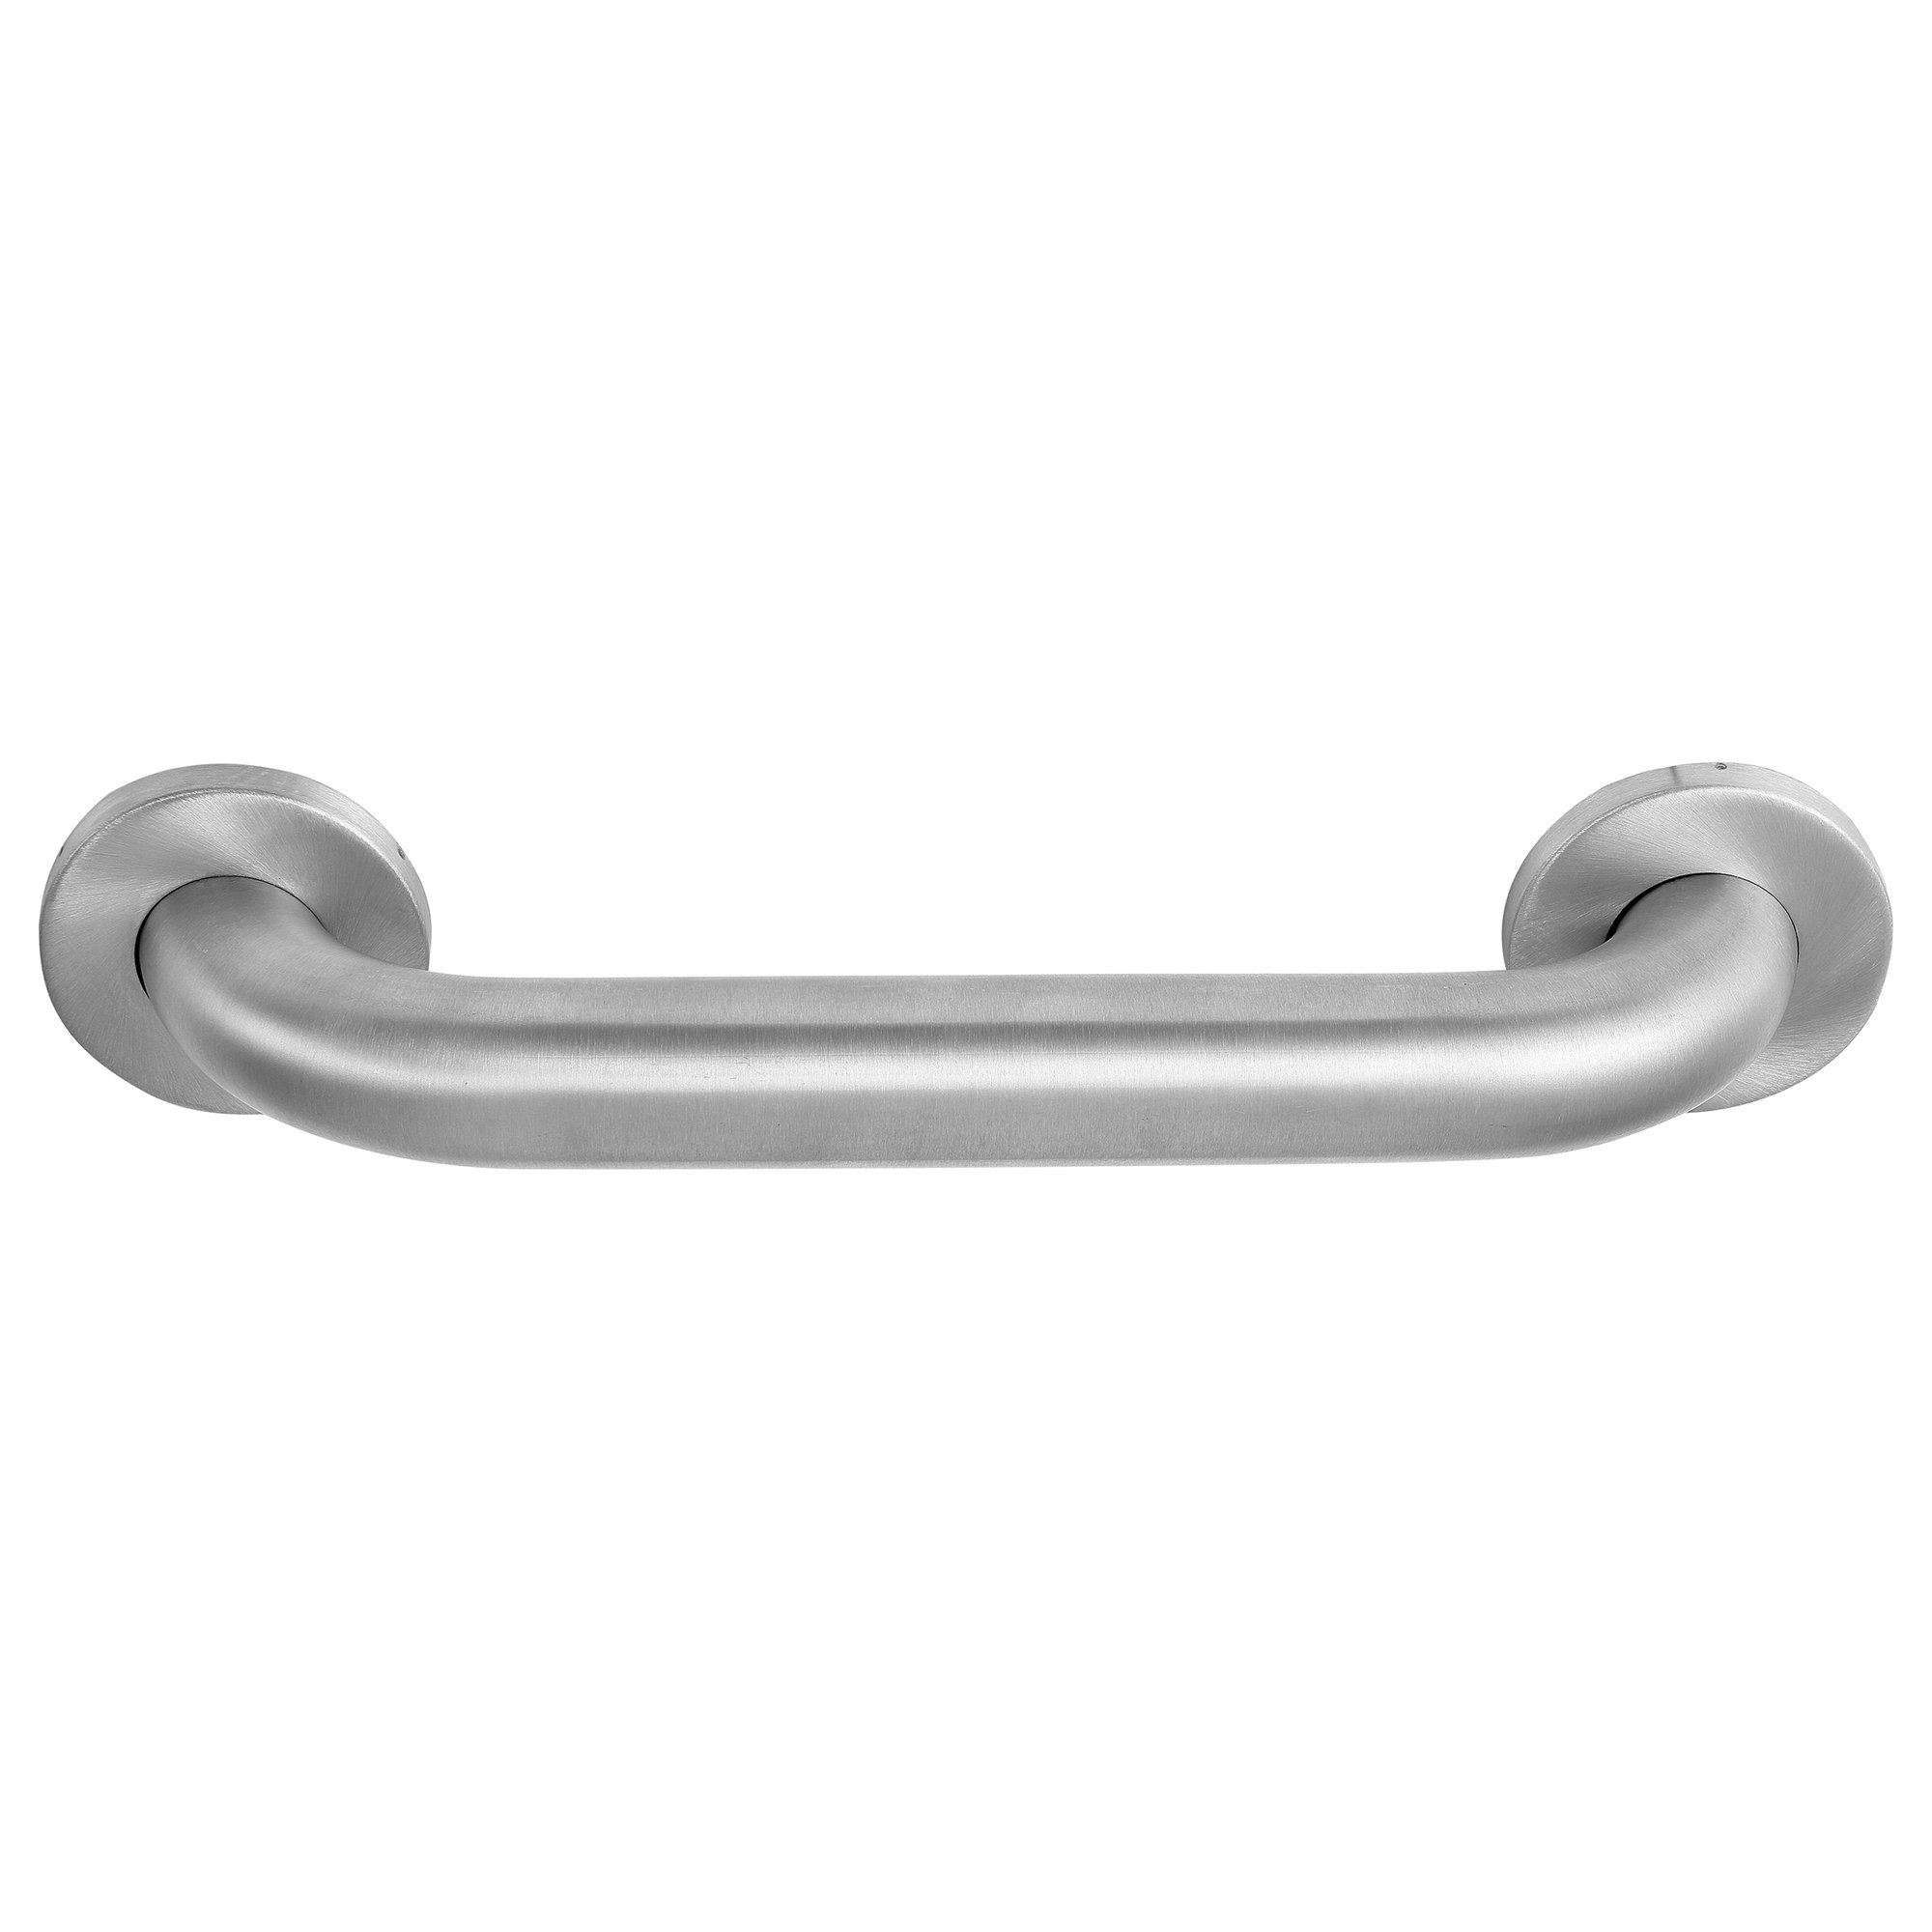 12'' Grab Bar - 1.5'' Gripping Surface - 304 Stainless Steel - Safety Bar for Bathroom, Shower, Bathtub, Toilet - by Dependable Direct by Dependable Direct